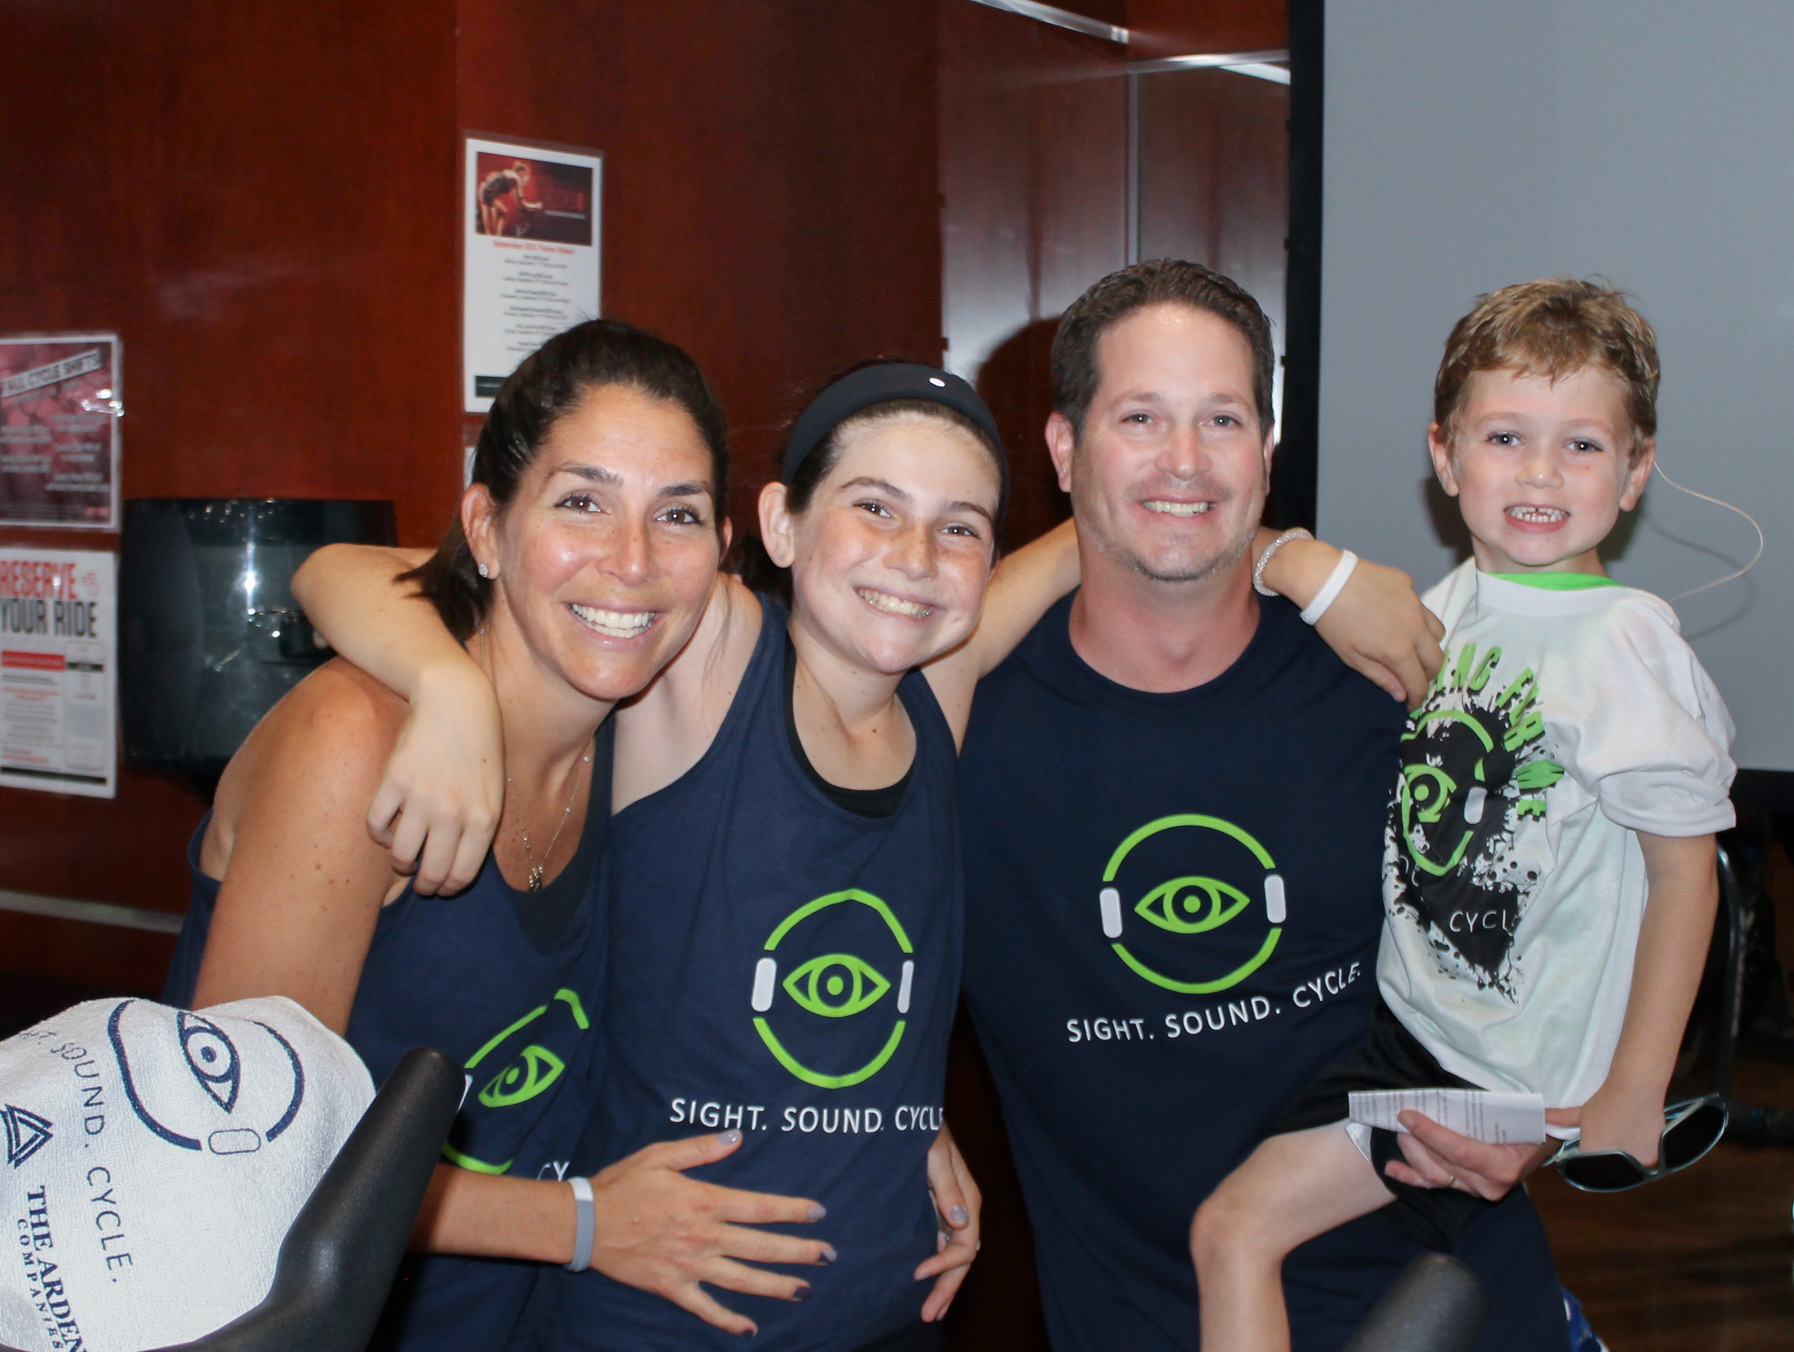 The Root family, Rachel (far left), Emily (left), Jared (right), and Zachary (far right), pose for a photo at a cycling event